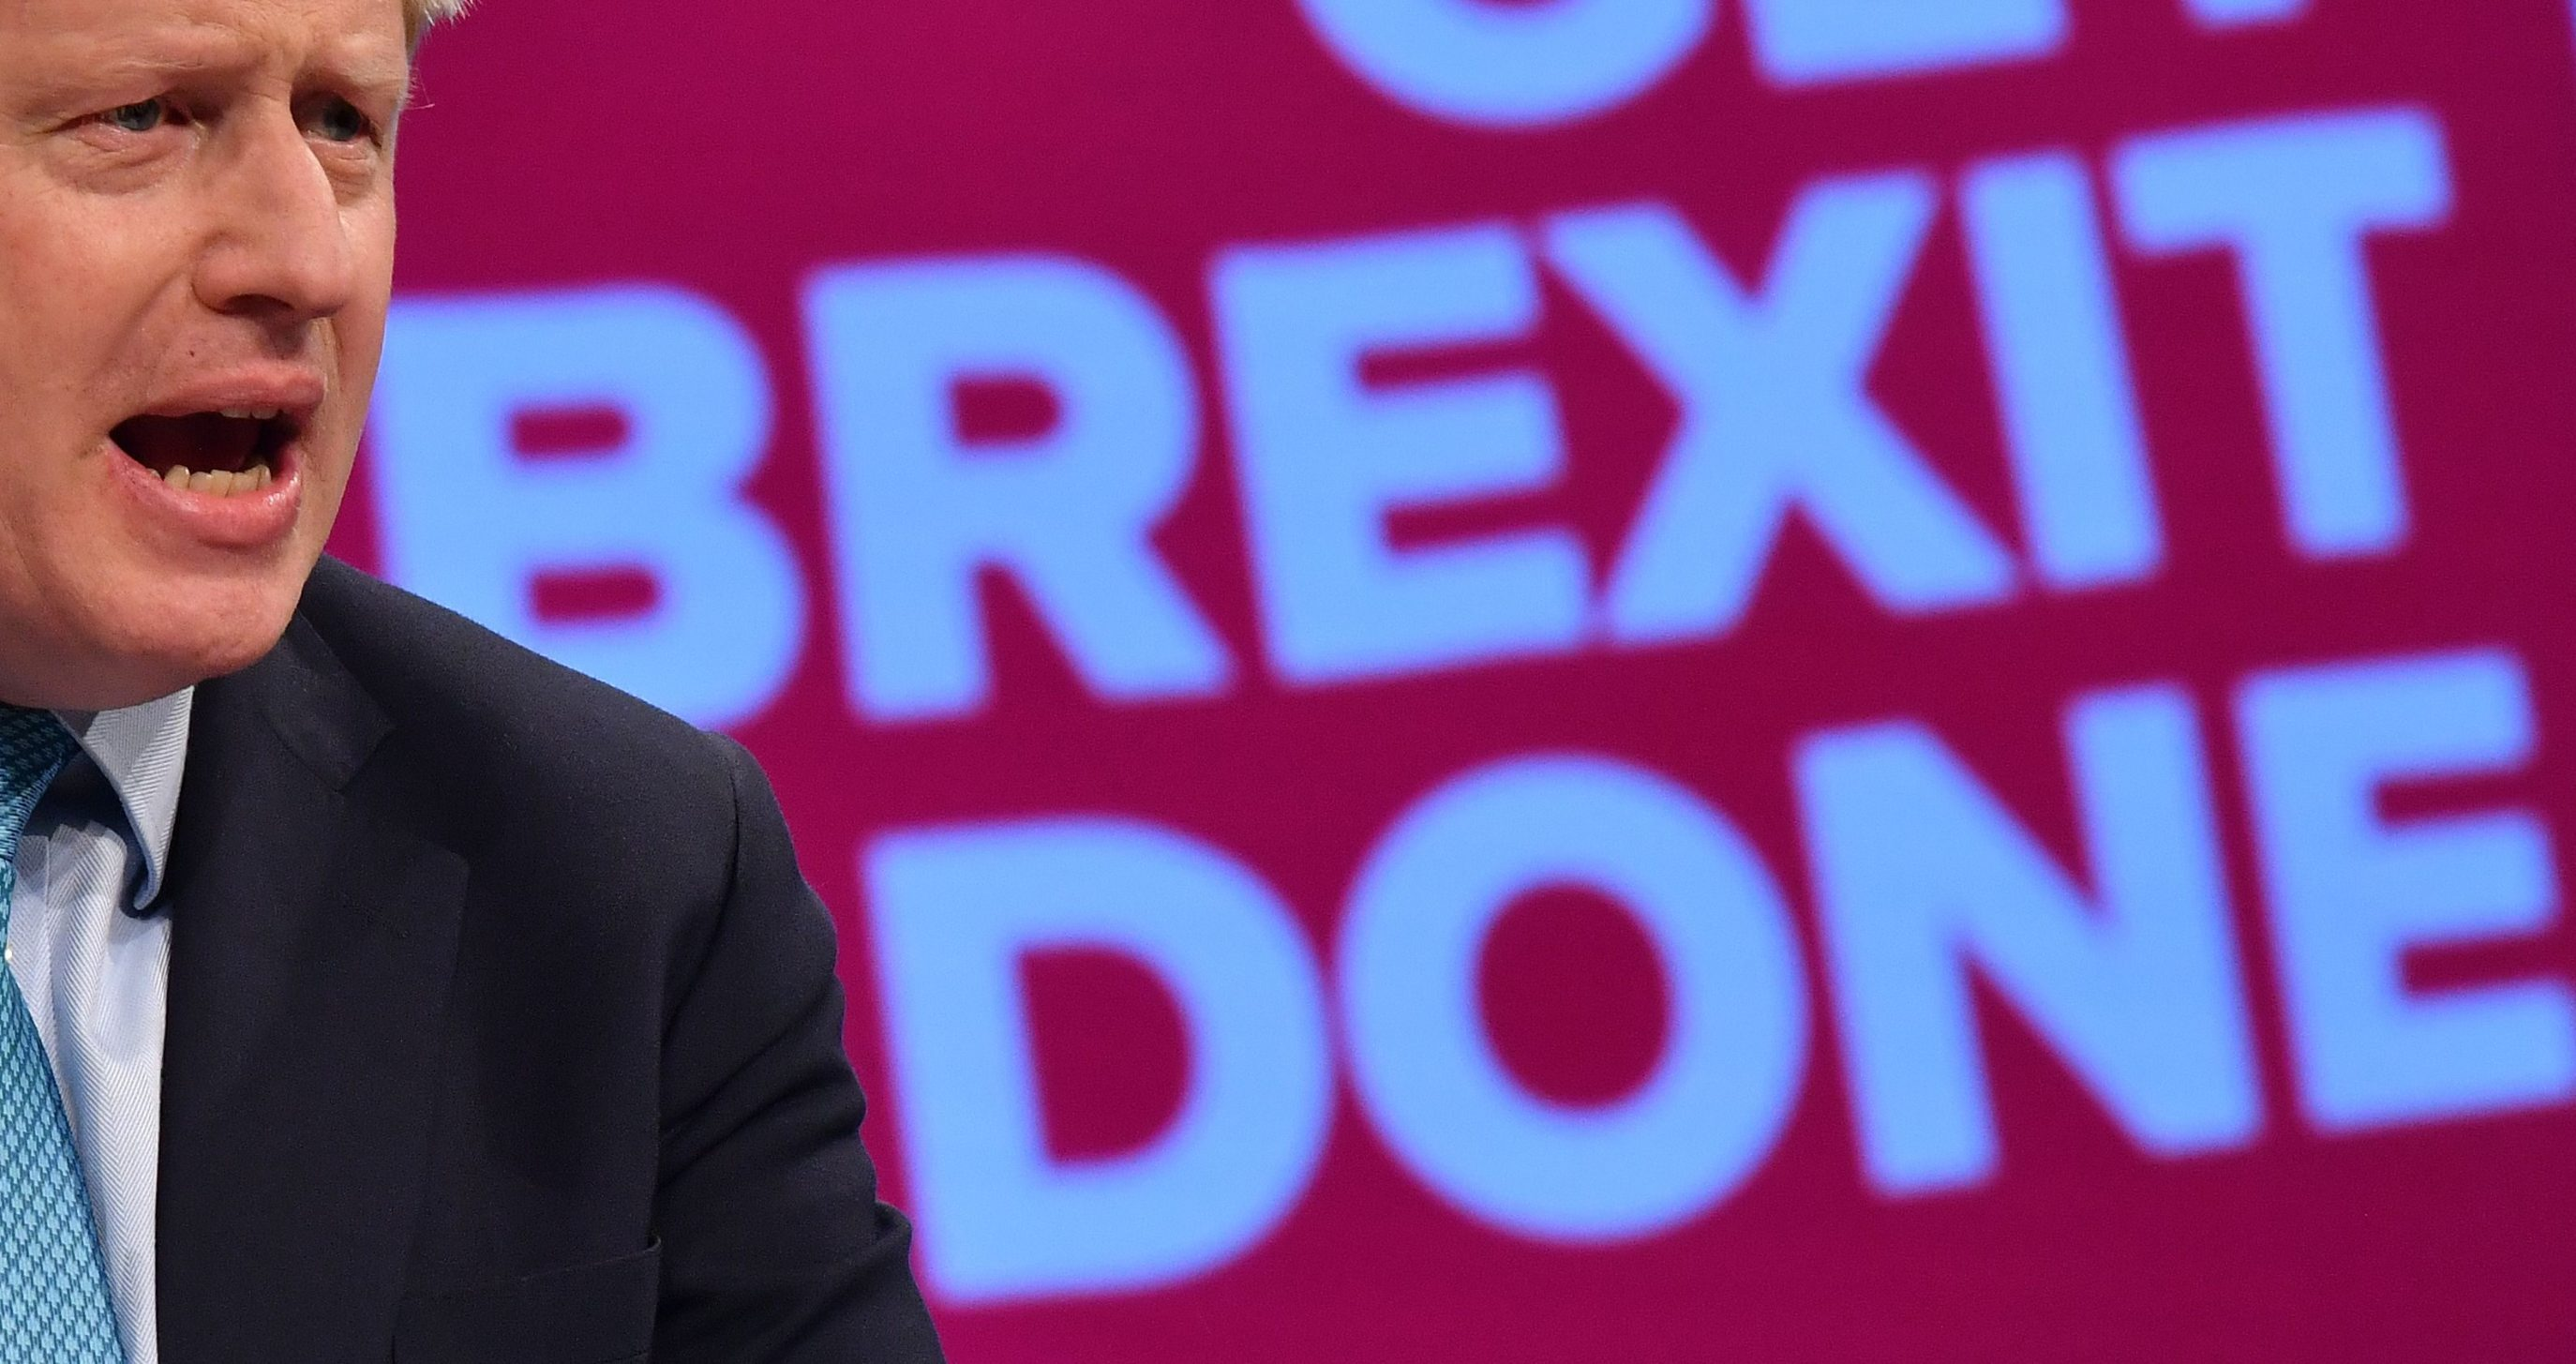 (FILES) In this file photo taken on October 02, 2019 Britain's Prime Minister Boris Johnson delivers his keynote speech to delegates on the final day of the annual Conservative Party conference at the Manchester Central convention complex, in Manchester, north-west England. - Britain is set to leave the European Union at 2300 GMT on January 31, 2020, 43 months after Britons voted in the June 2016 referendum to leave the EU, ending more than four decades of economic, political and legal integration with its closest neighbours. (Photo by Ben STANSALL / AFP)